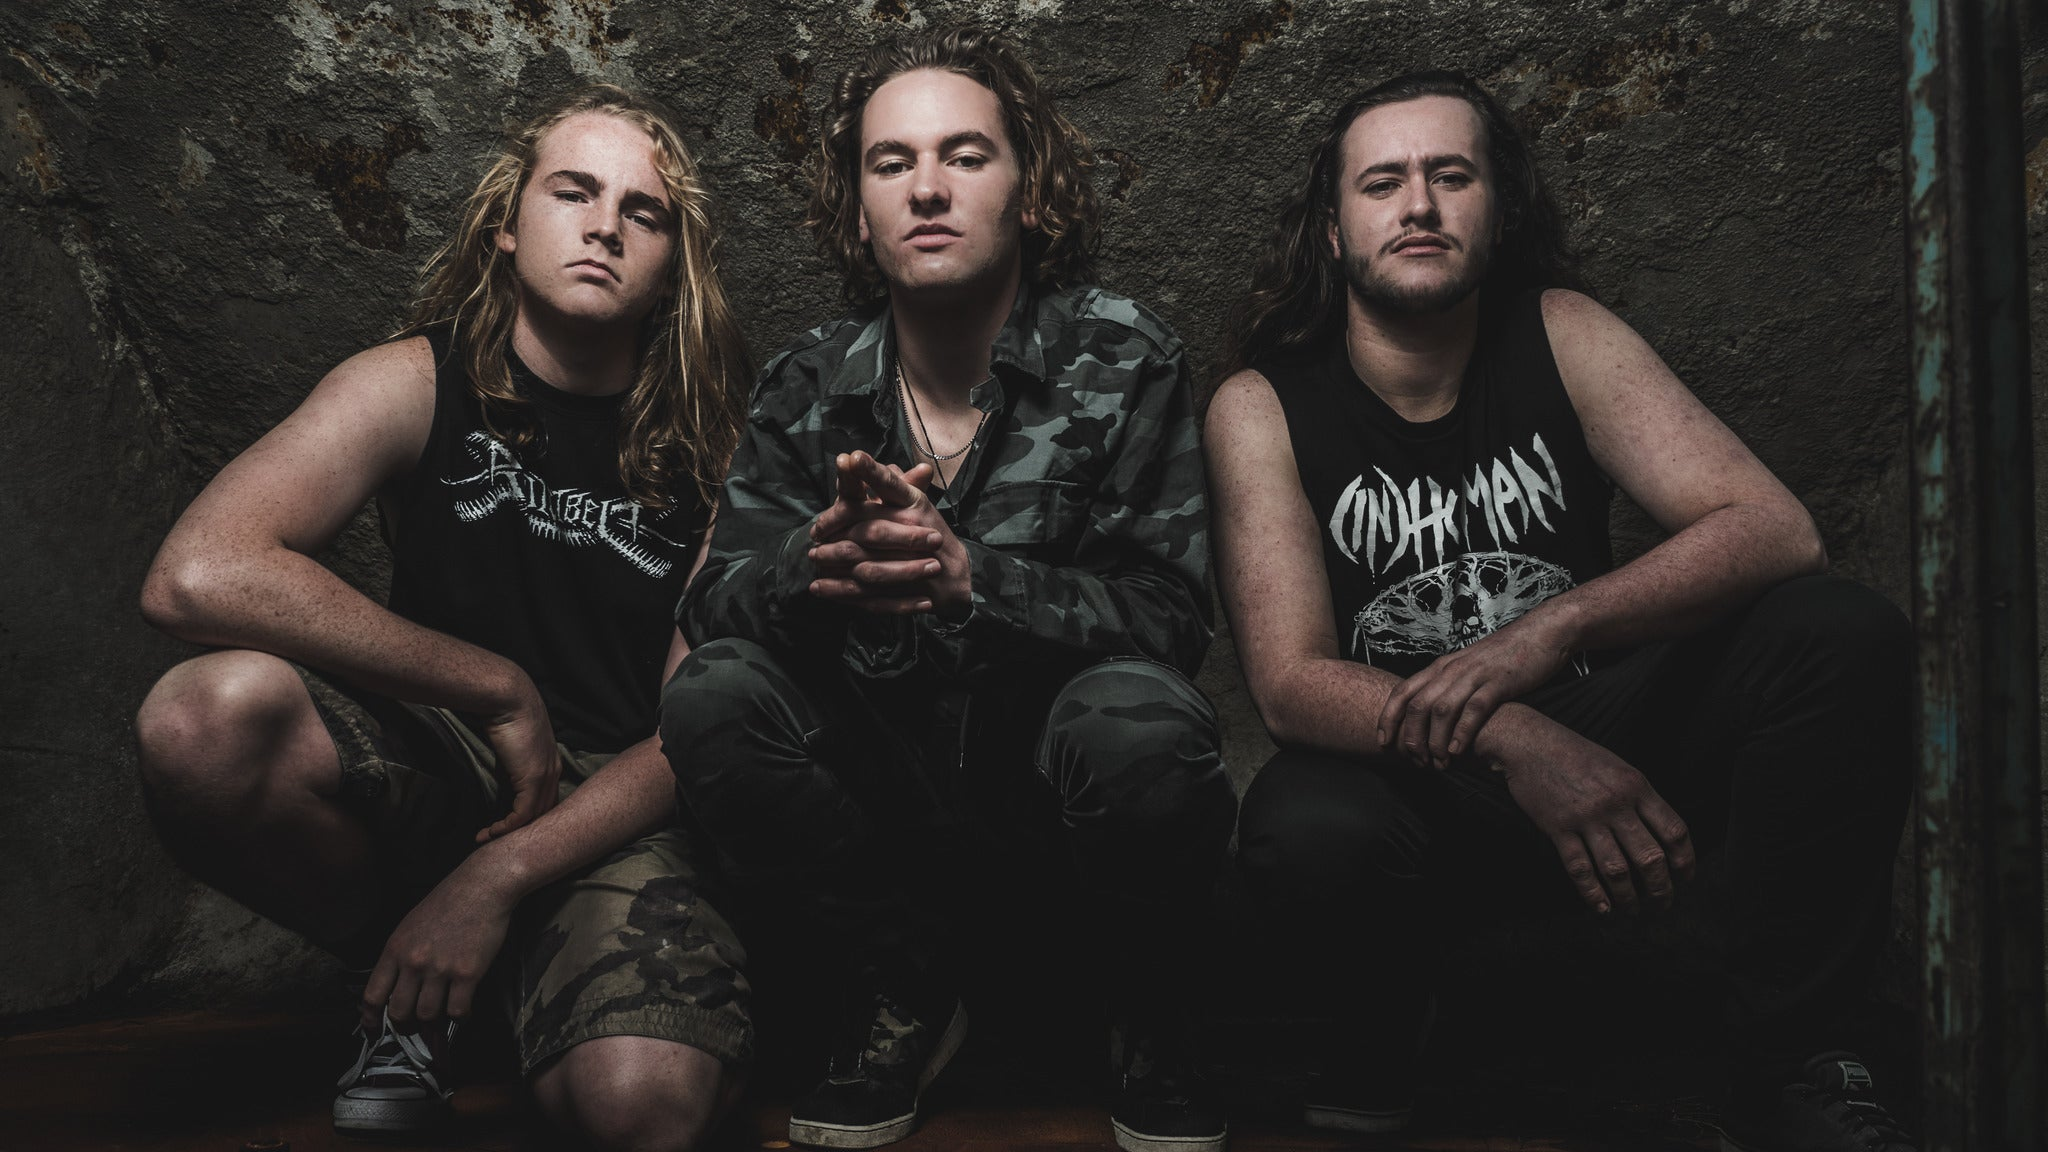 Alien Weaponry at Chain Reaction